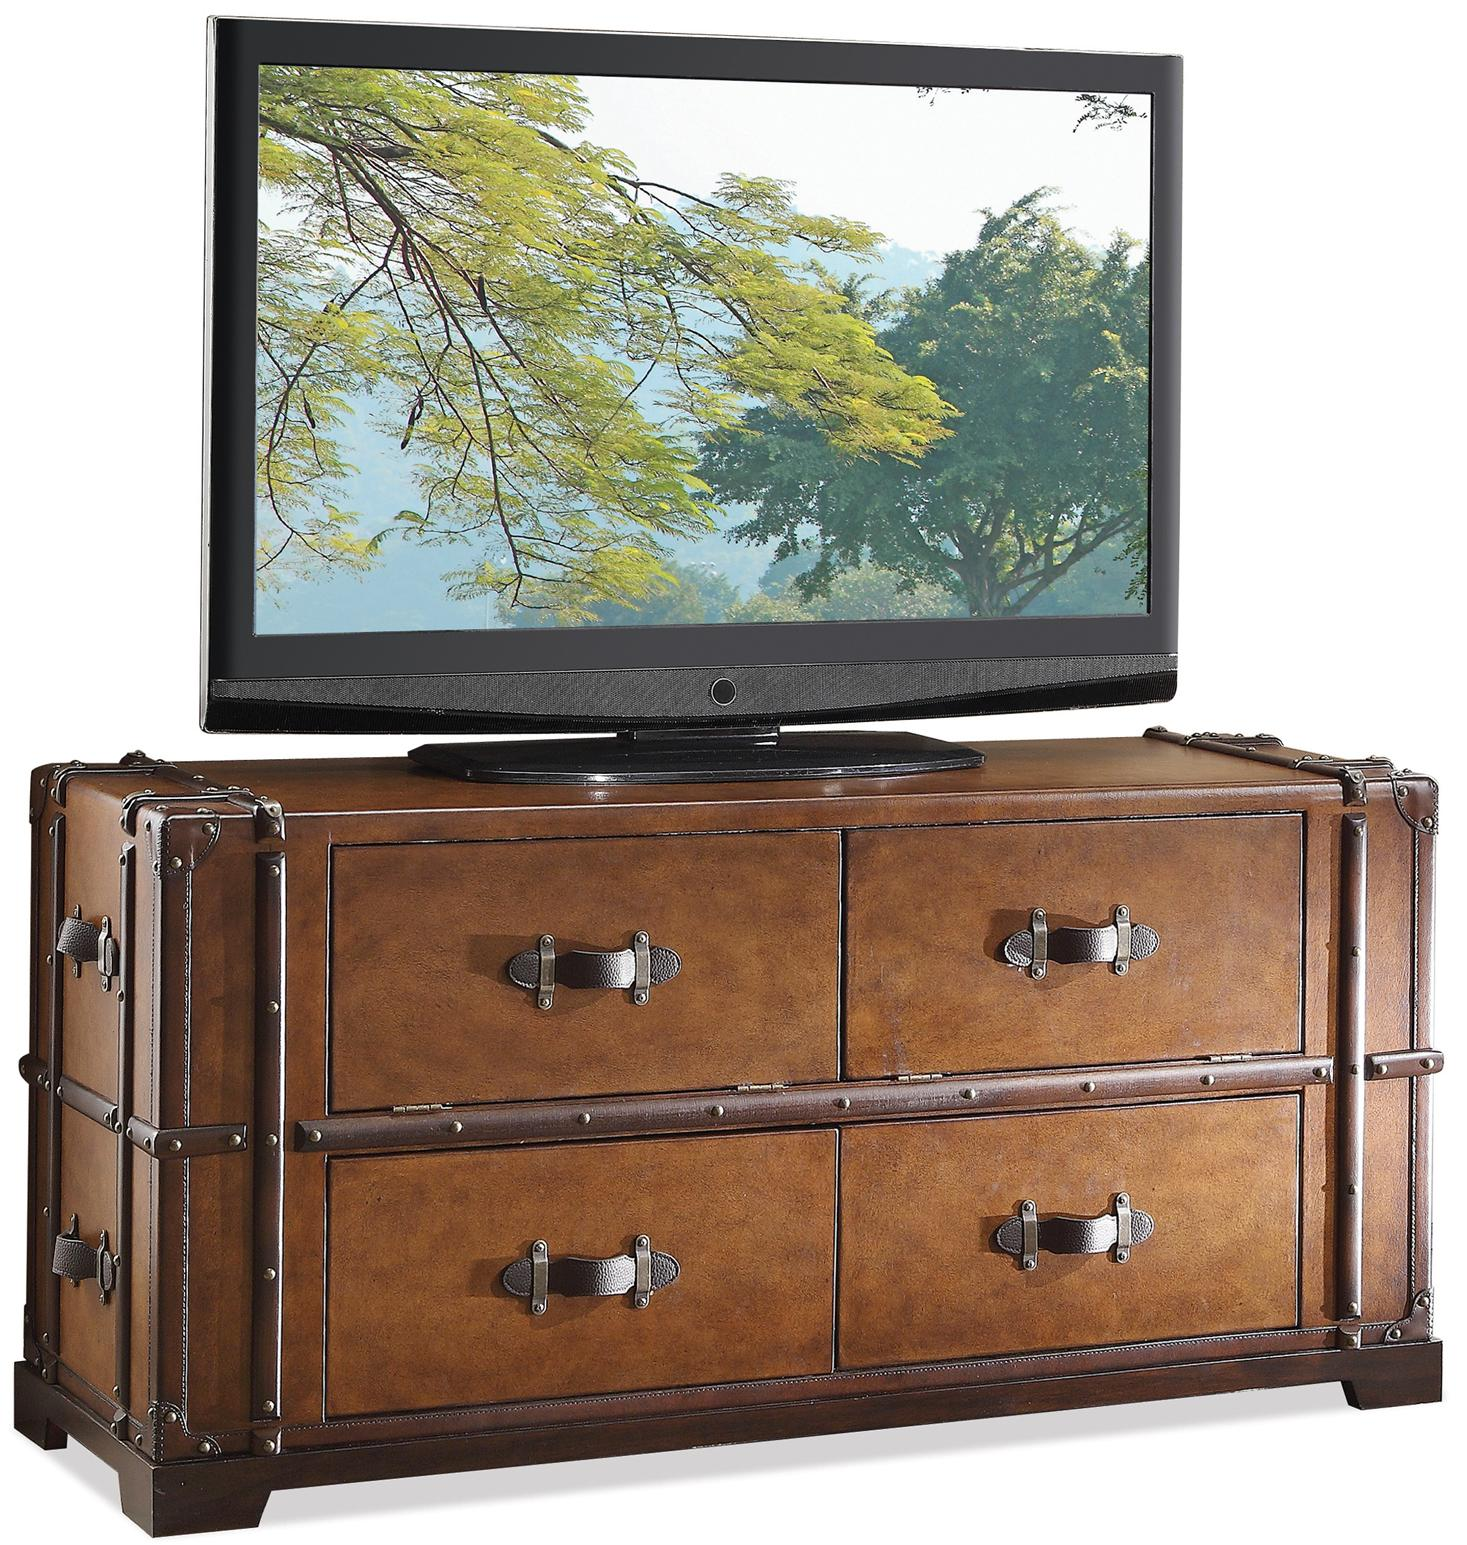 Riverside Furniture Latitudes Steamer Trunk TV Console - Item Number: 38741